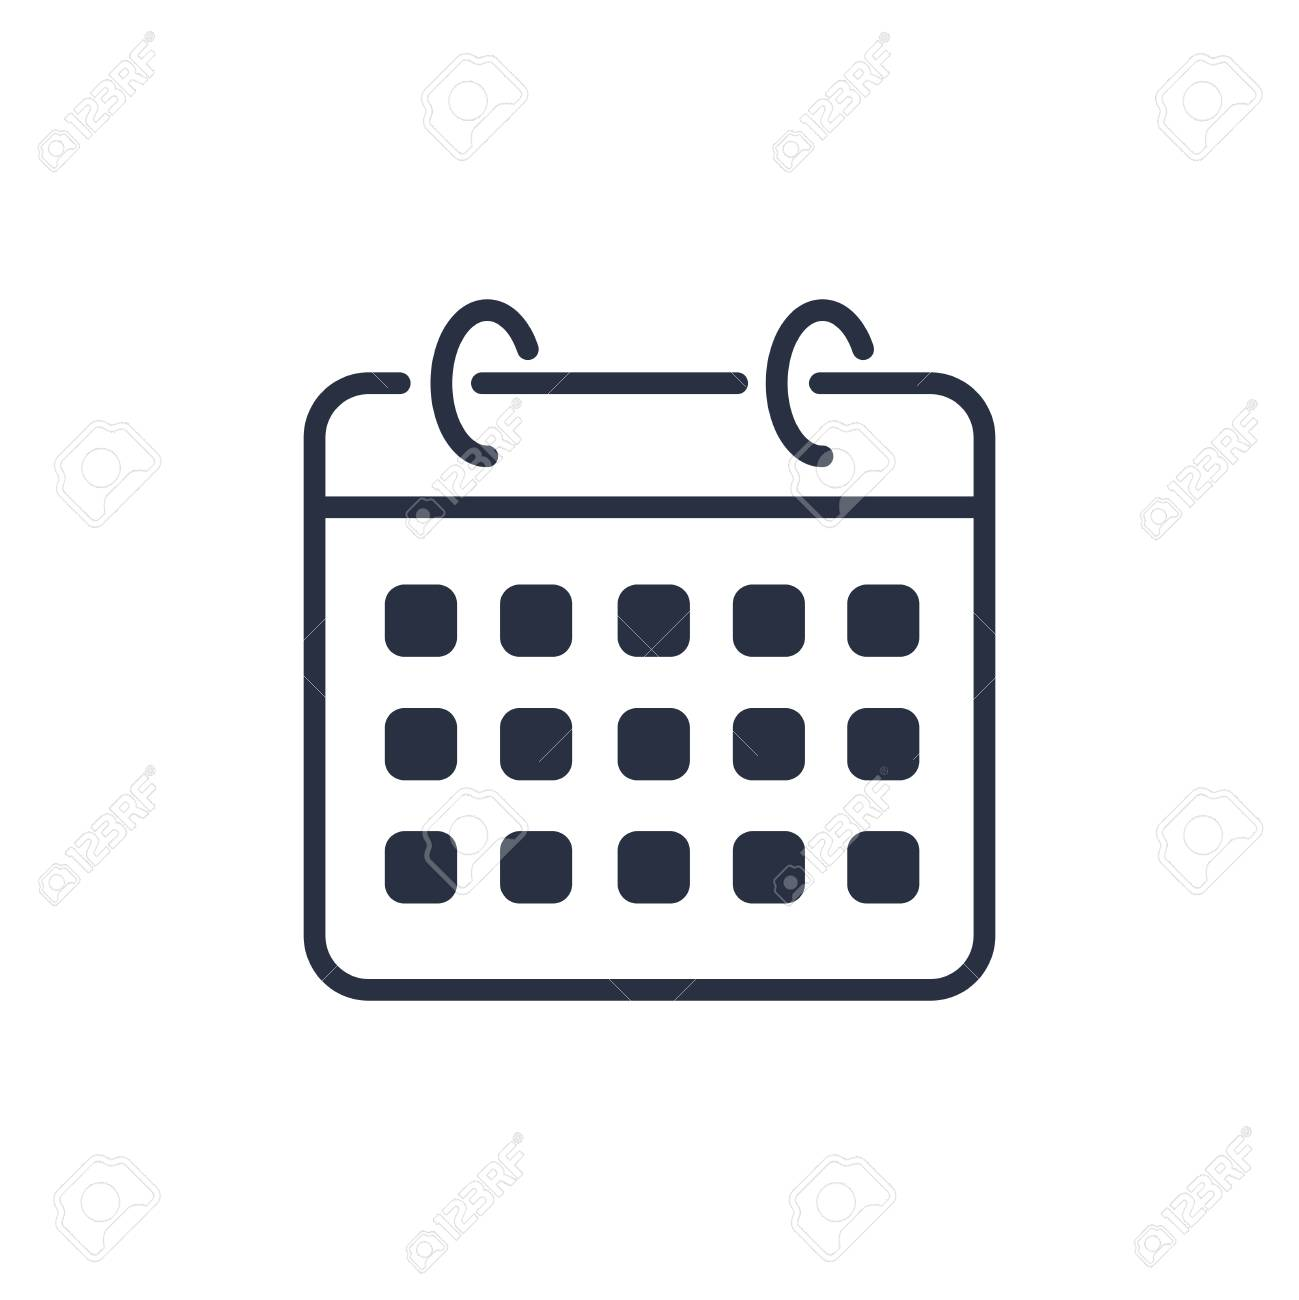 Calendar icon vector. Agenda app, business deadline, date page icon. Vector illustration isolated on white background. Reminder, shedule line simple sign. Organizer concept. Binder modern minimalistic - 125112365